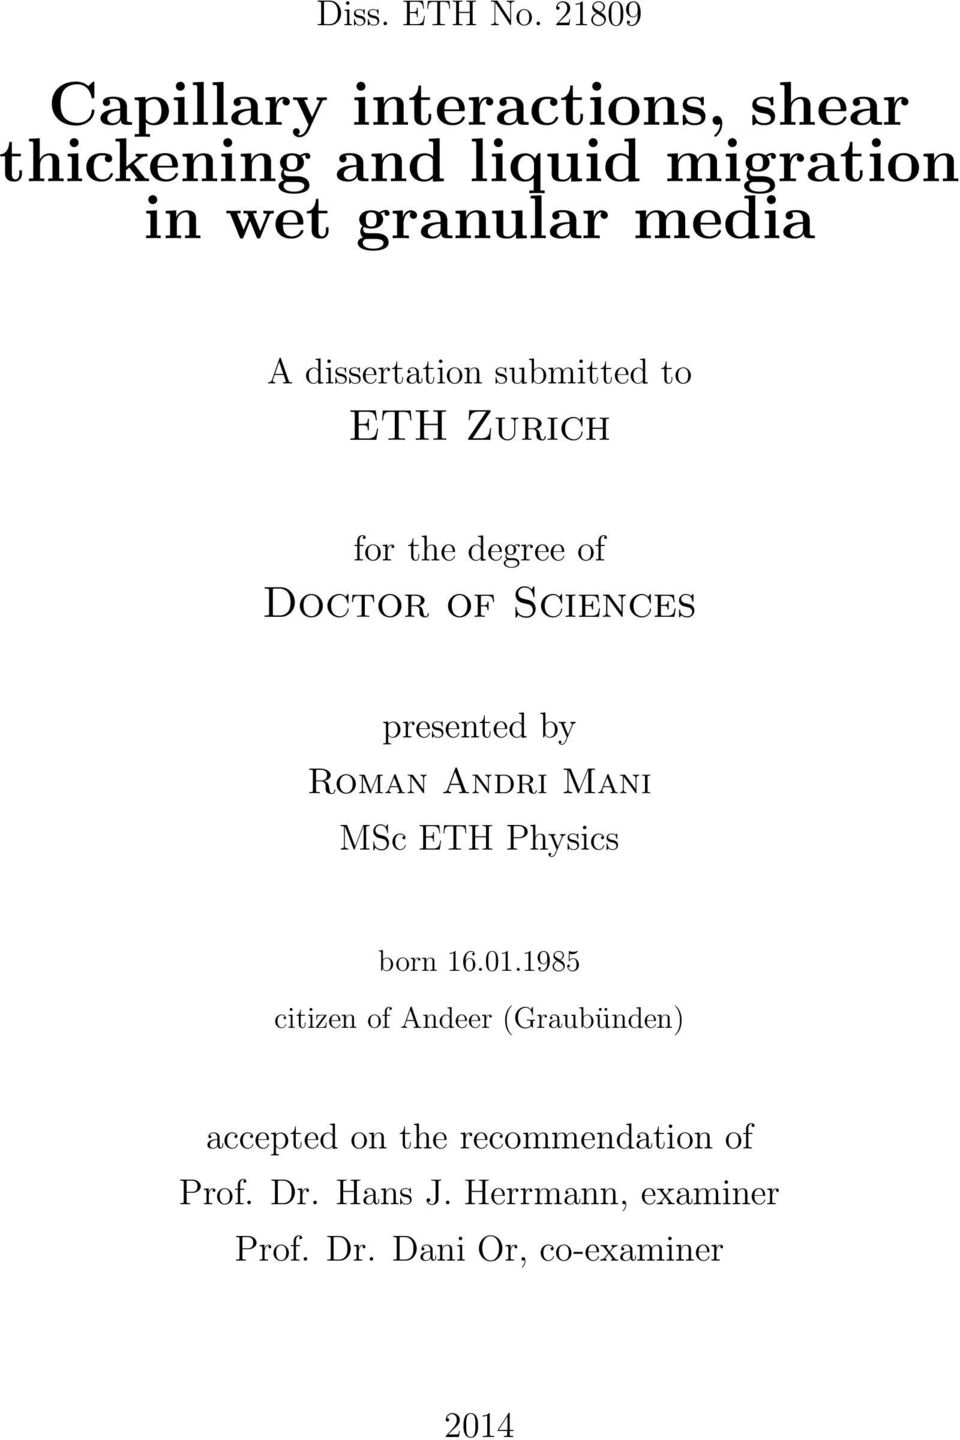 dissertation submitted to ETH Zurich for the degree of Doctor of Sciences presented by Roman